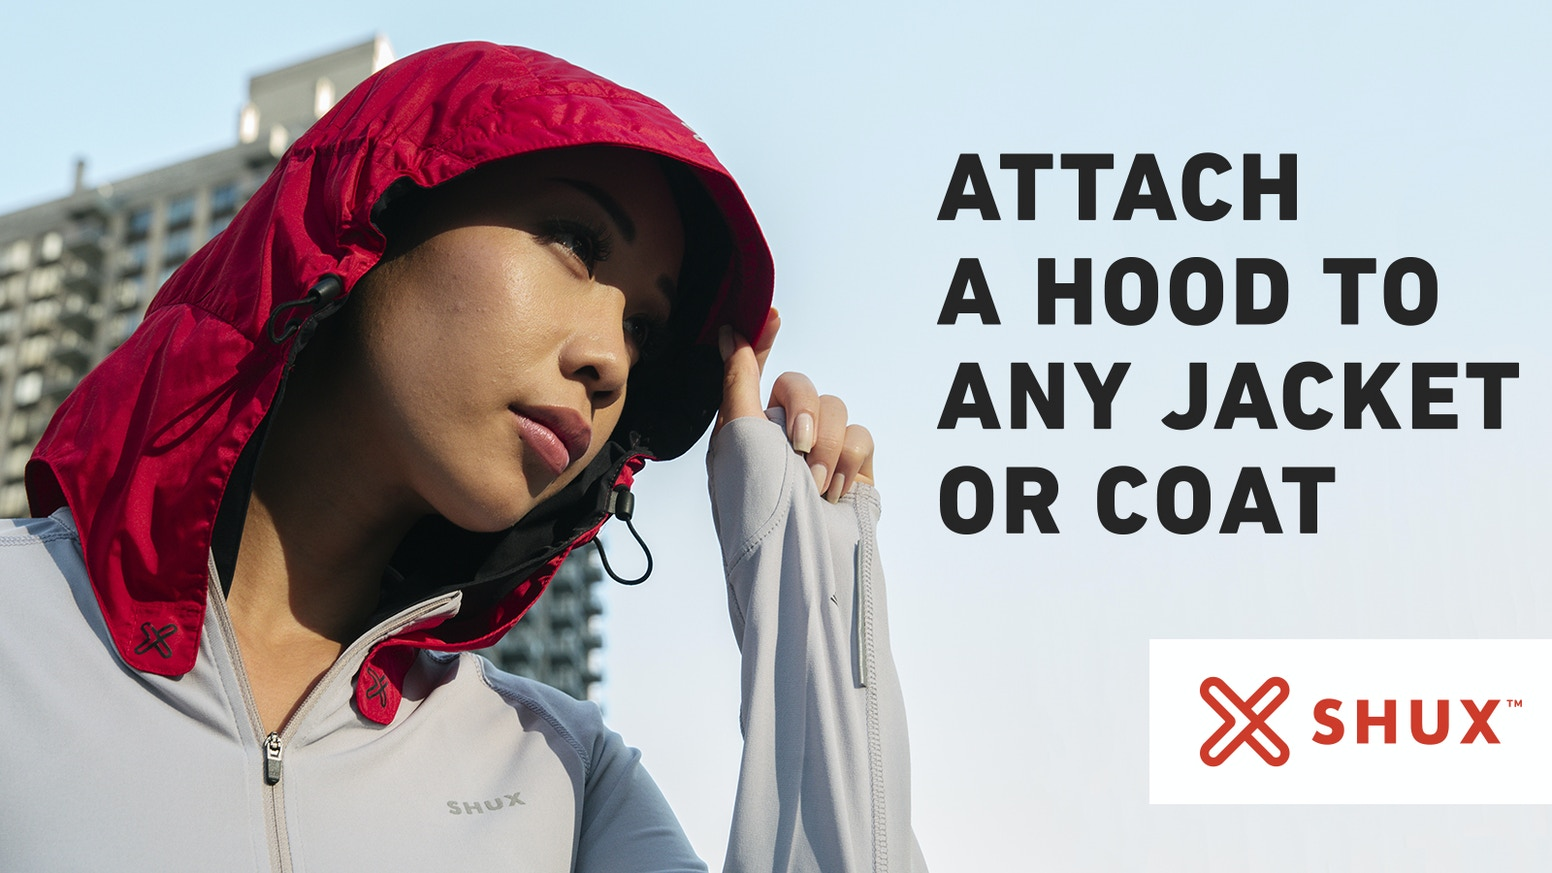 Always be ready for rain, snow, or wind with the only hood that attaches to any jacket or coat with magnetic technology.